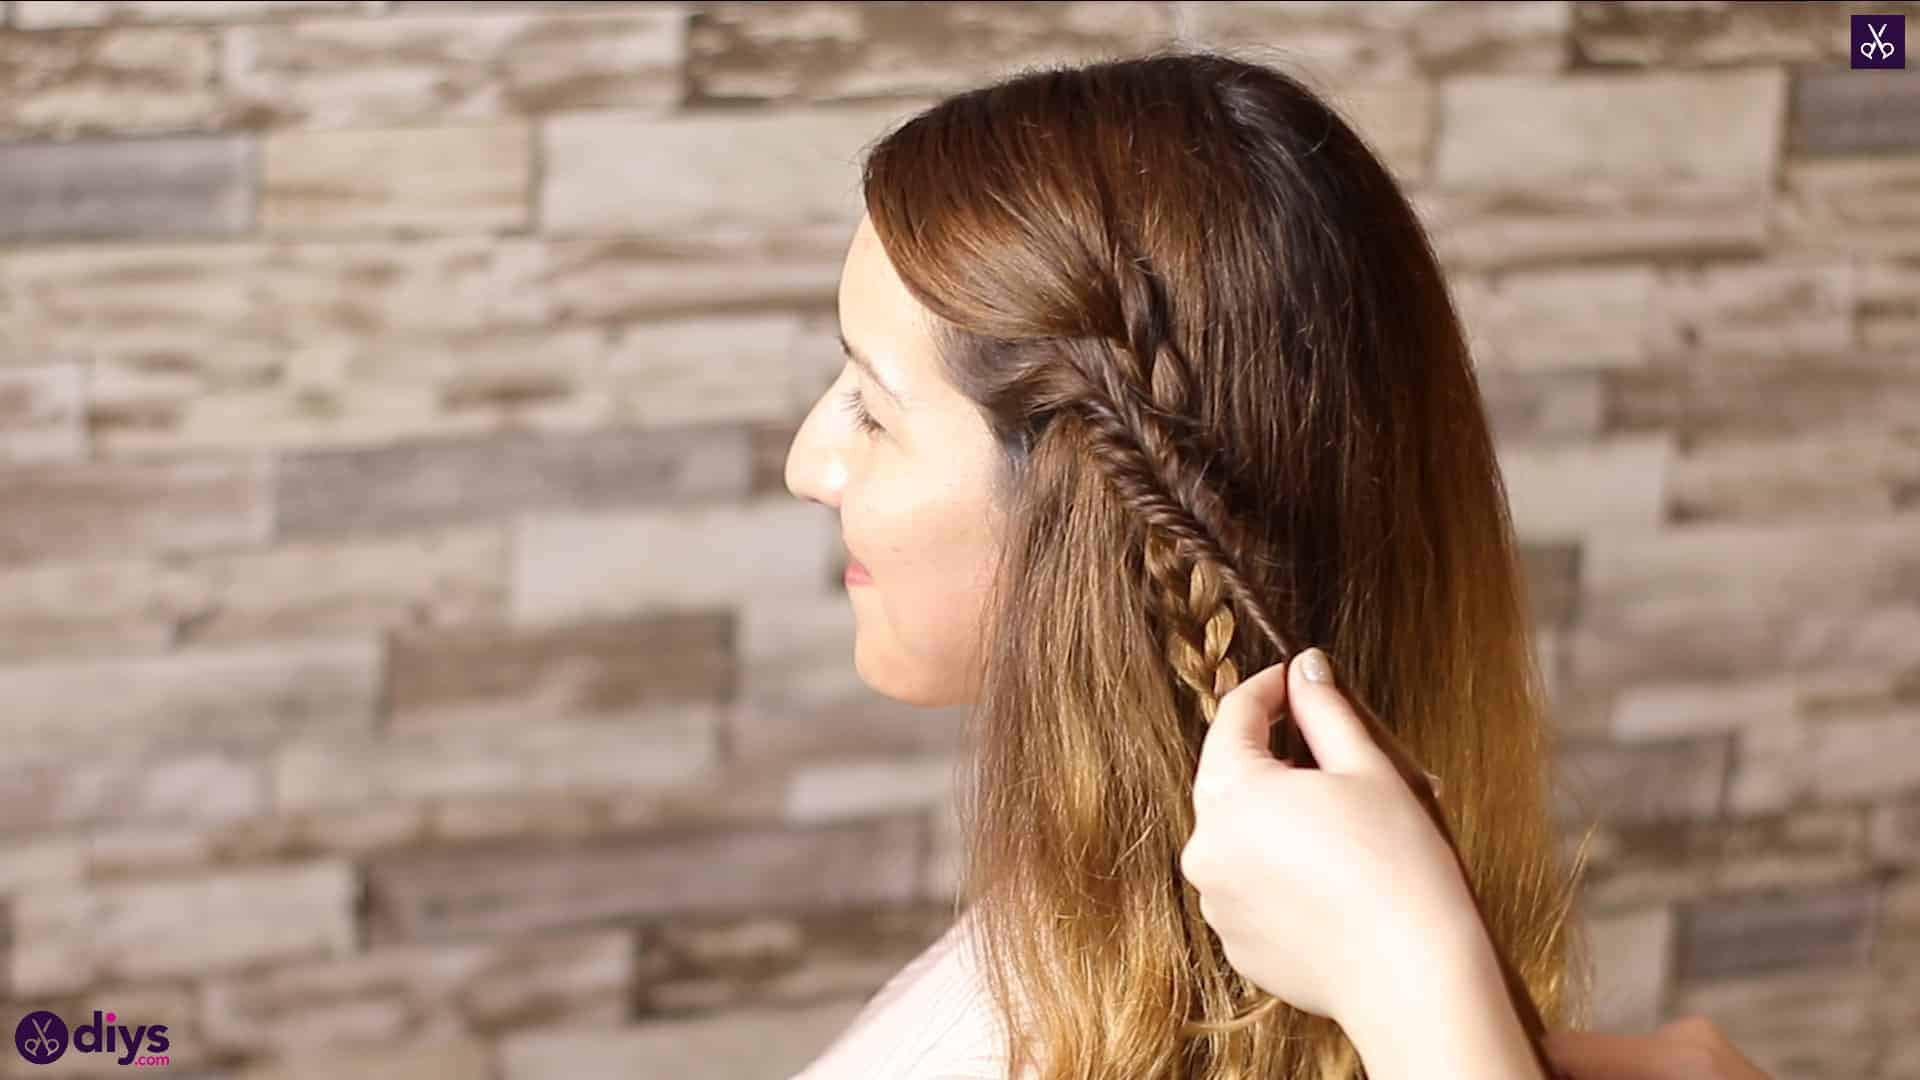 Half up, half down hairstyle for spring29